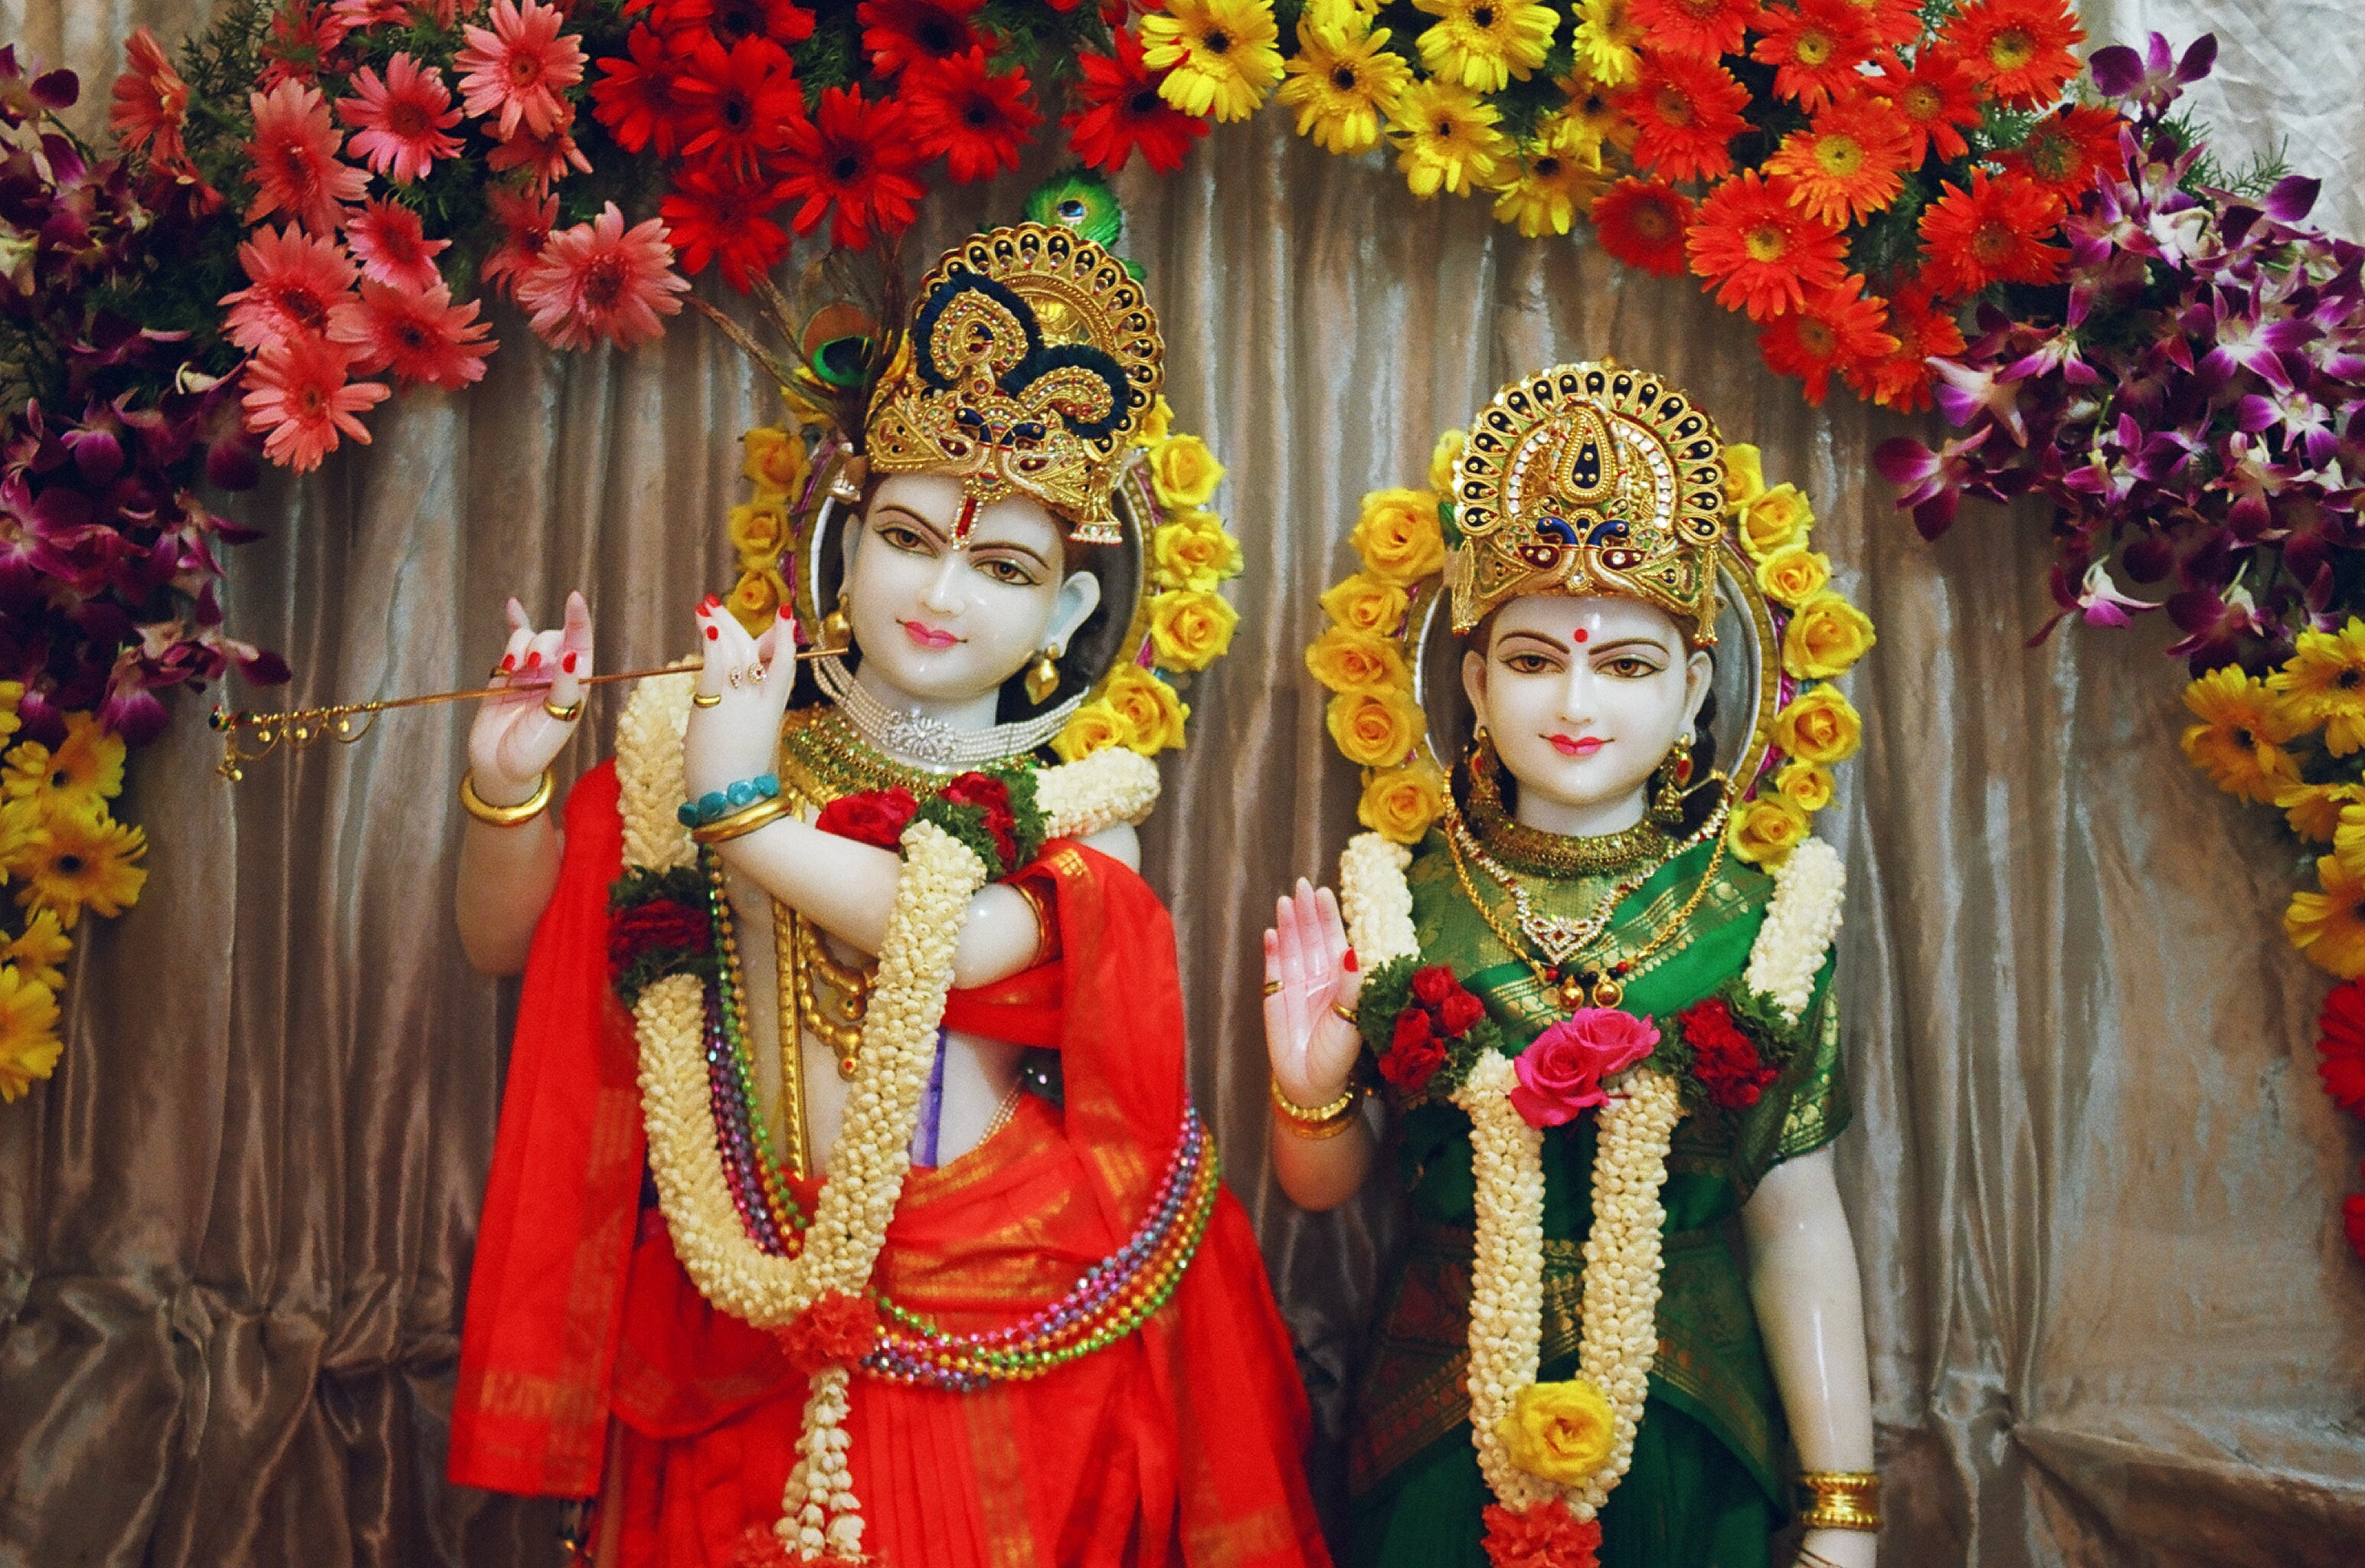 It is the occasion that is celebrated popularly in Mathura where Lord Krishna was born. And the Vrindavan where he spent his childhood. It is also celebrated and observed with much in parts of Gujarat, Rajasthan and in the northeastern states like Assam and Manipur.